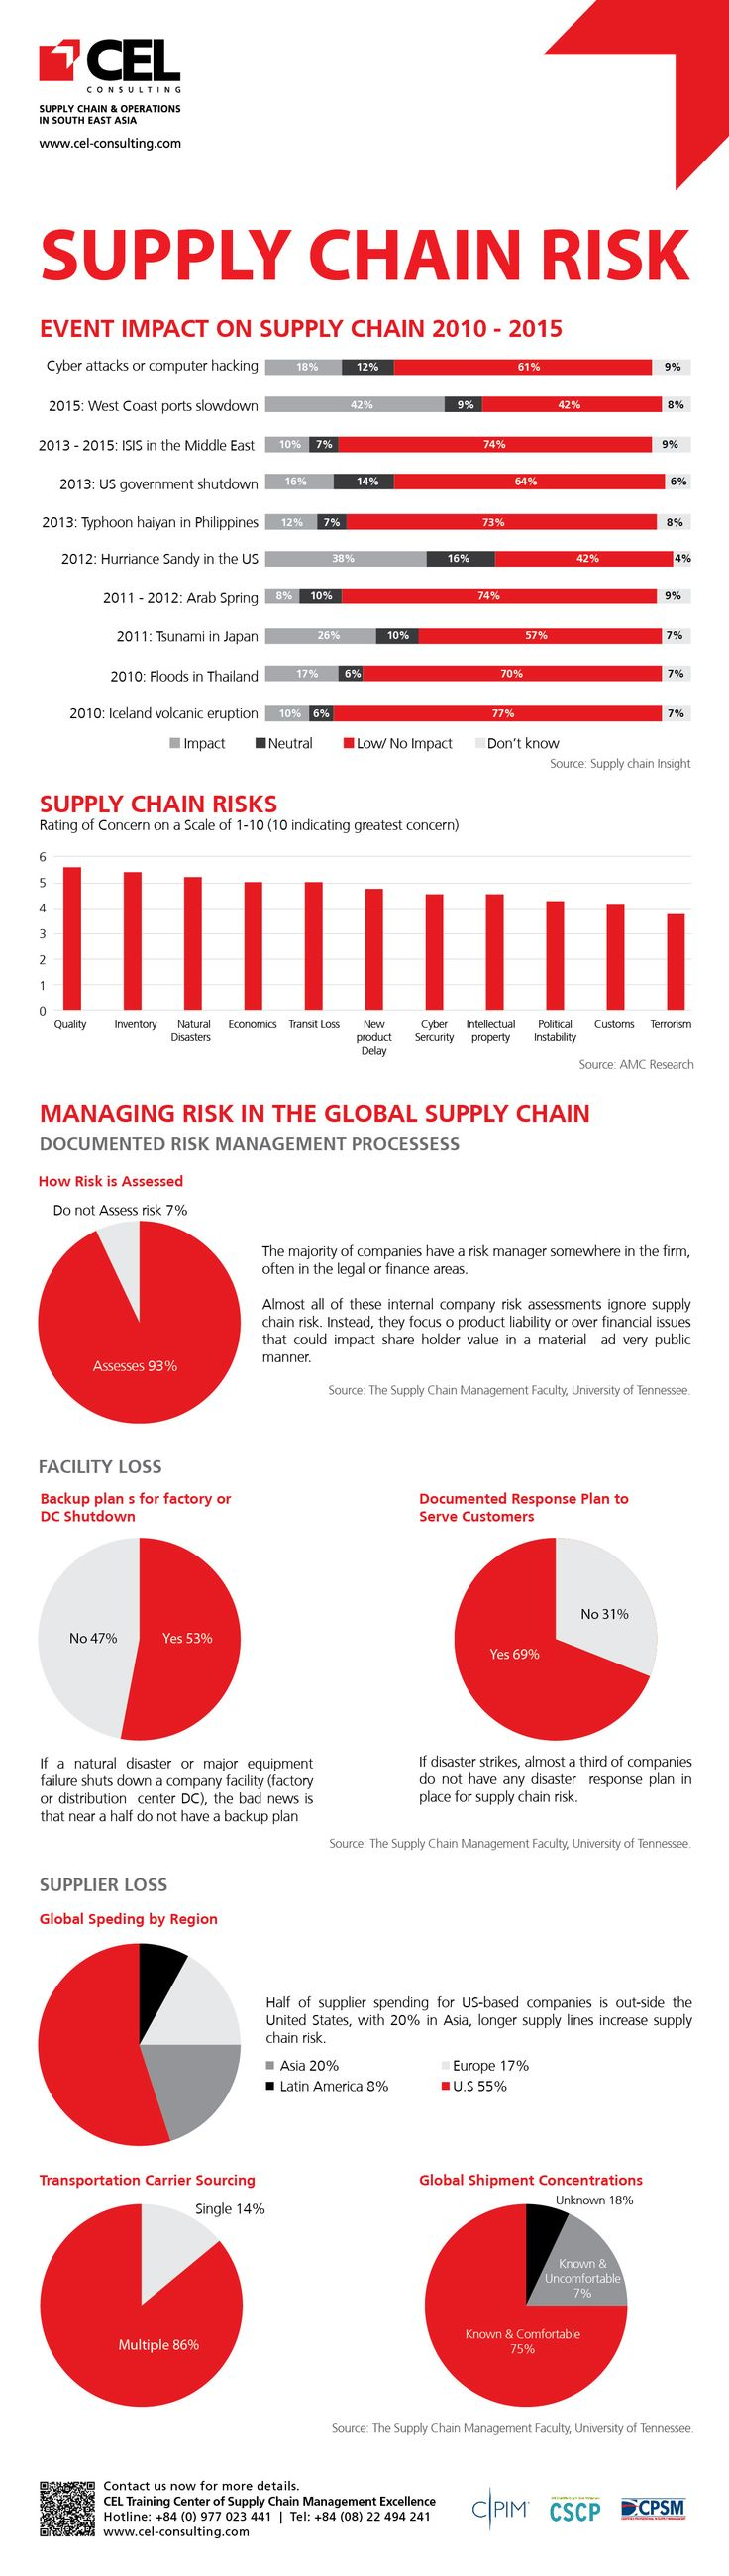 investigation of supply chain risk in Supply chain risk management (scrm) is becoming a top priority in procurement, as organizations lose millions because of cost volatility, supply disruption, non-compliance fines and incidents that cause damage to the organizational brand and reputation bribes to shady government officials .